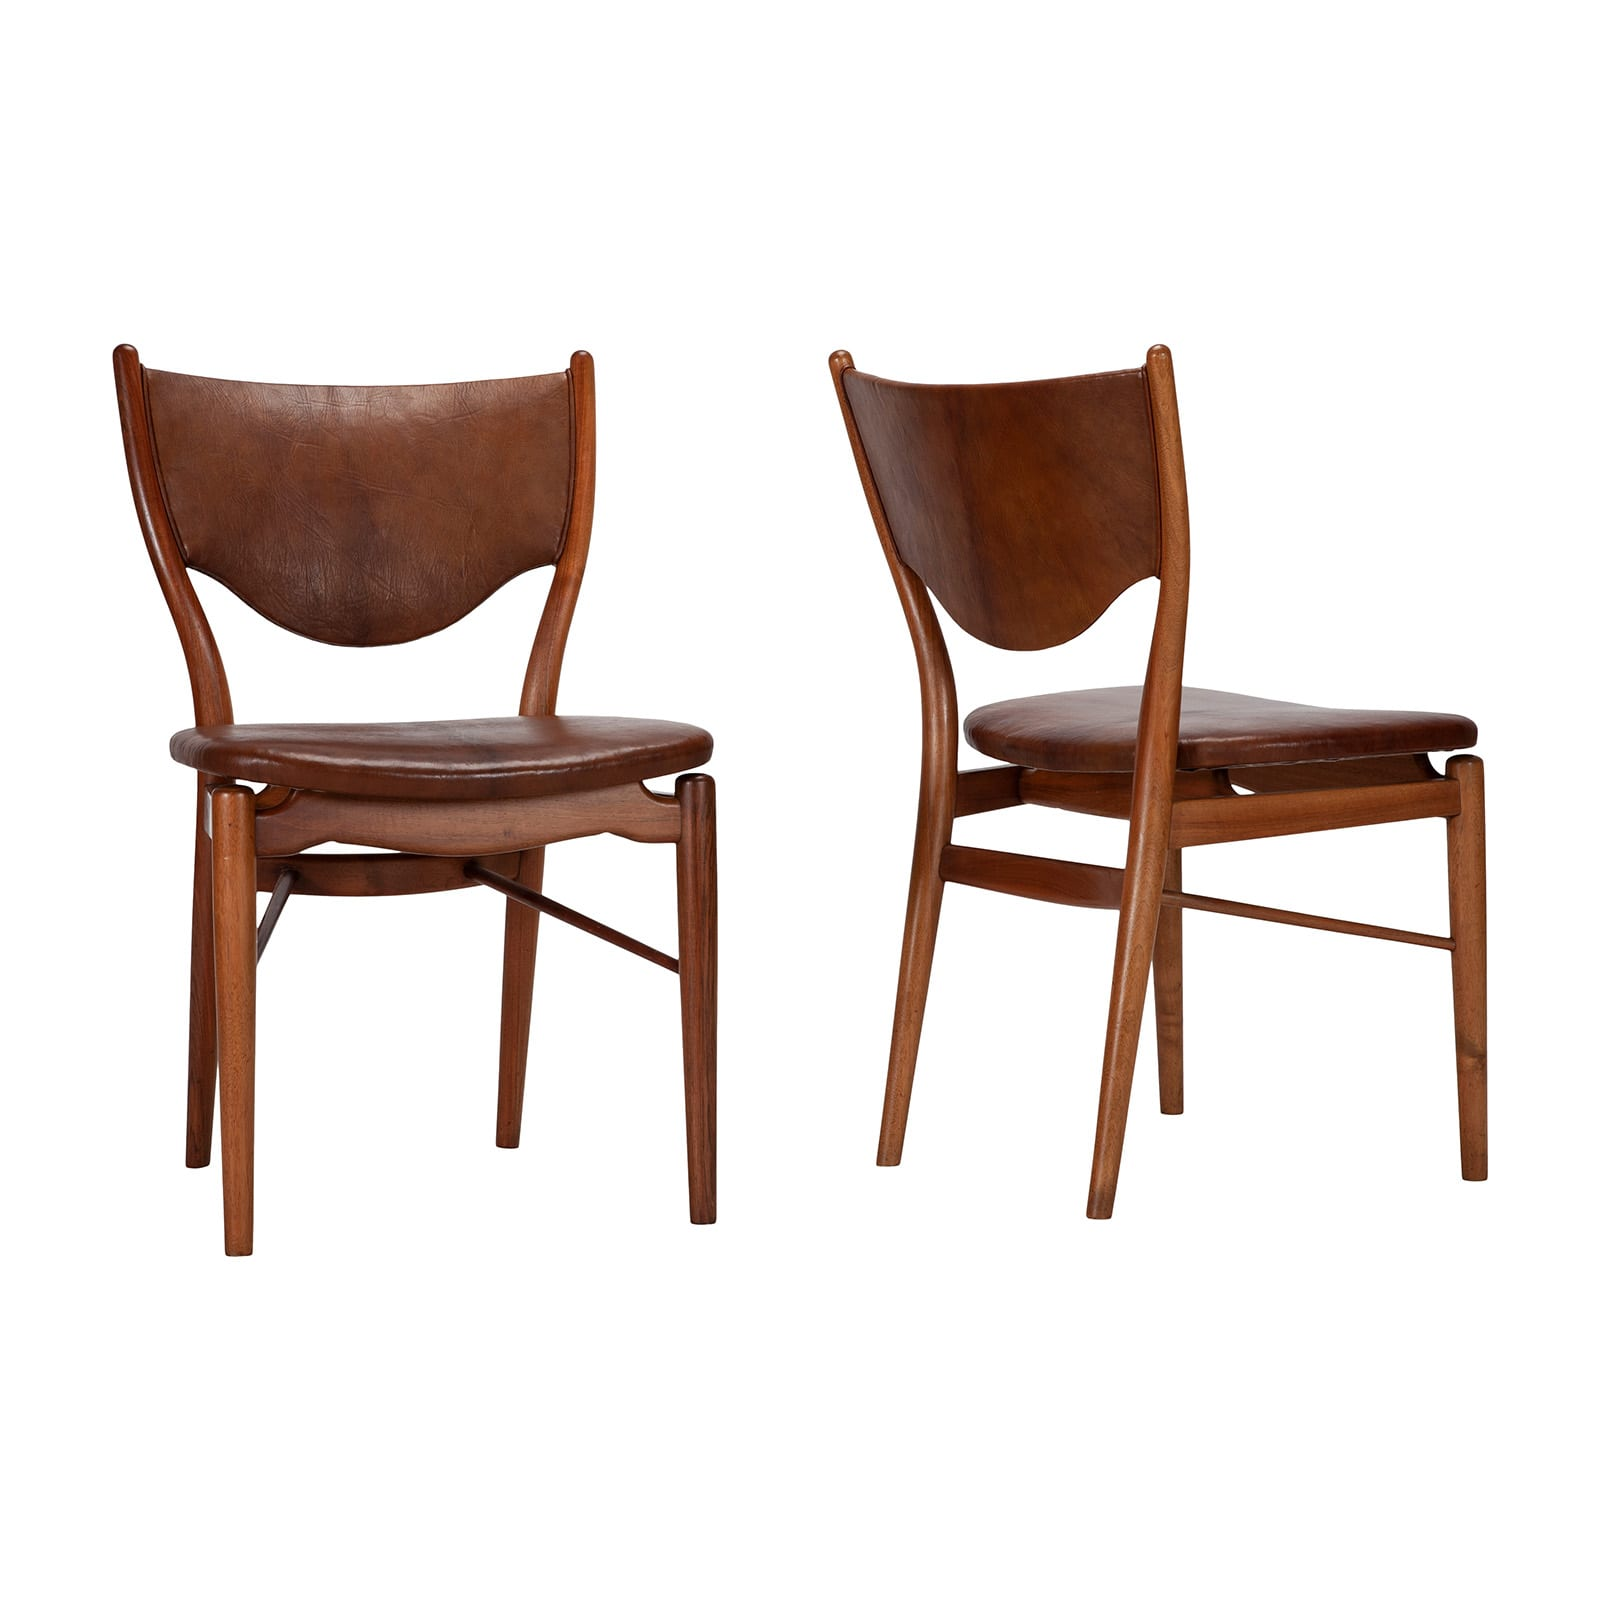 A Set of four chairs and two armchairs